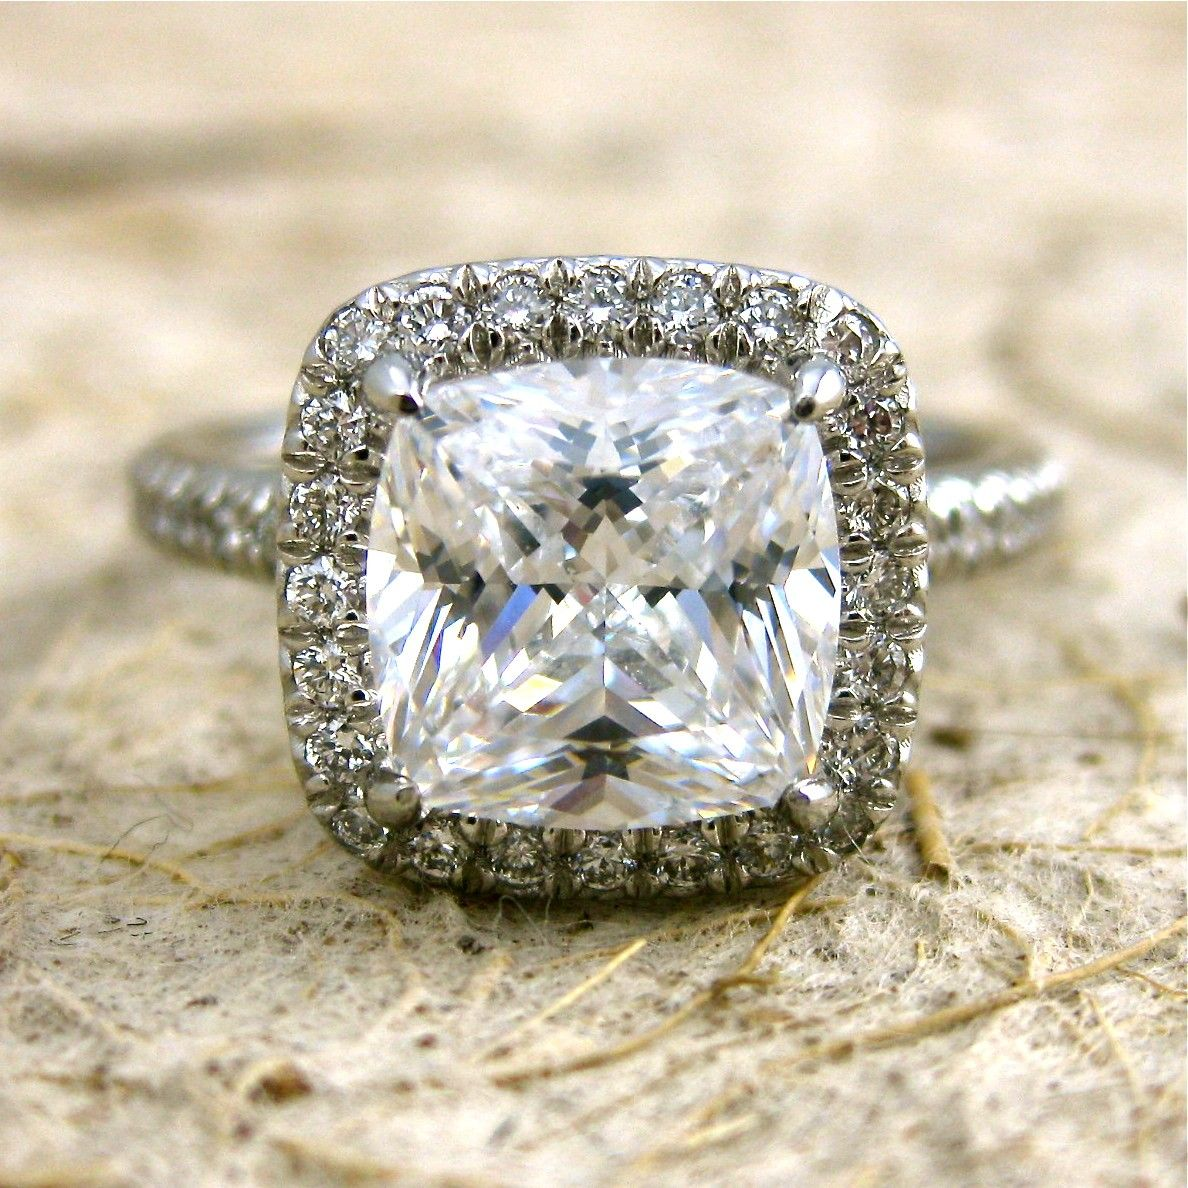 Custom made micro pave diamond engagement ring in platinum with your